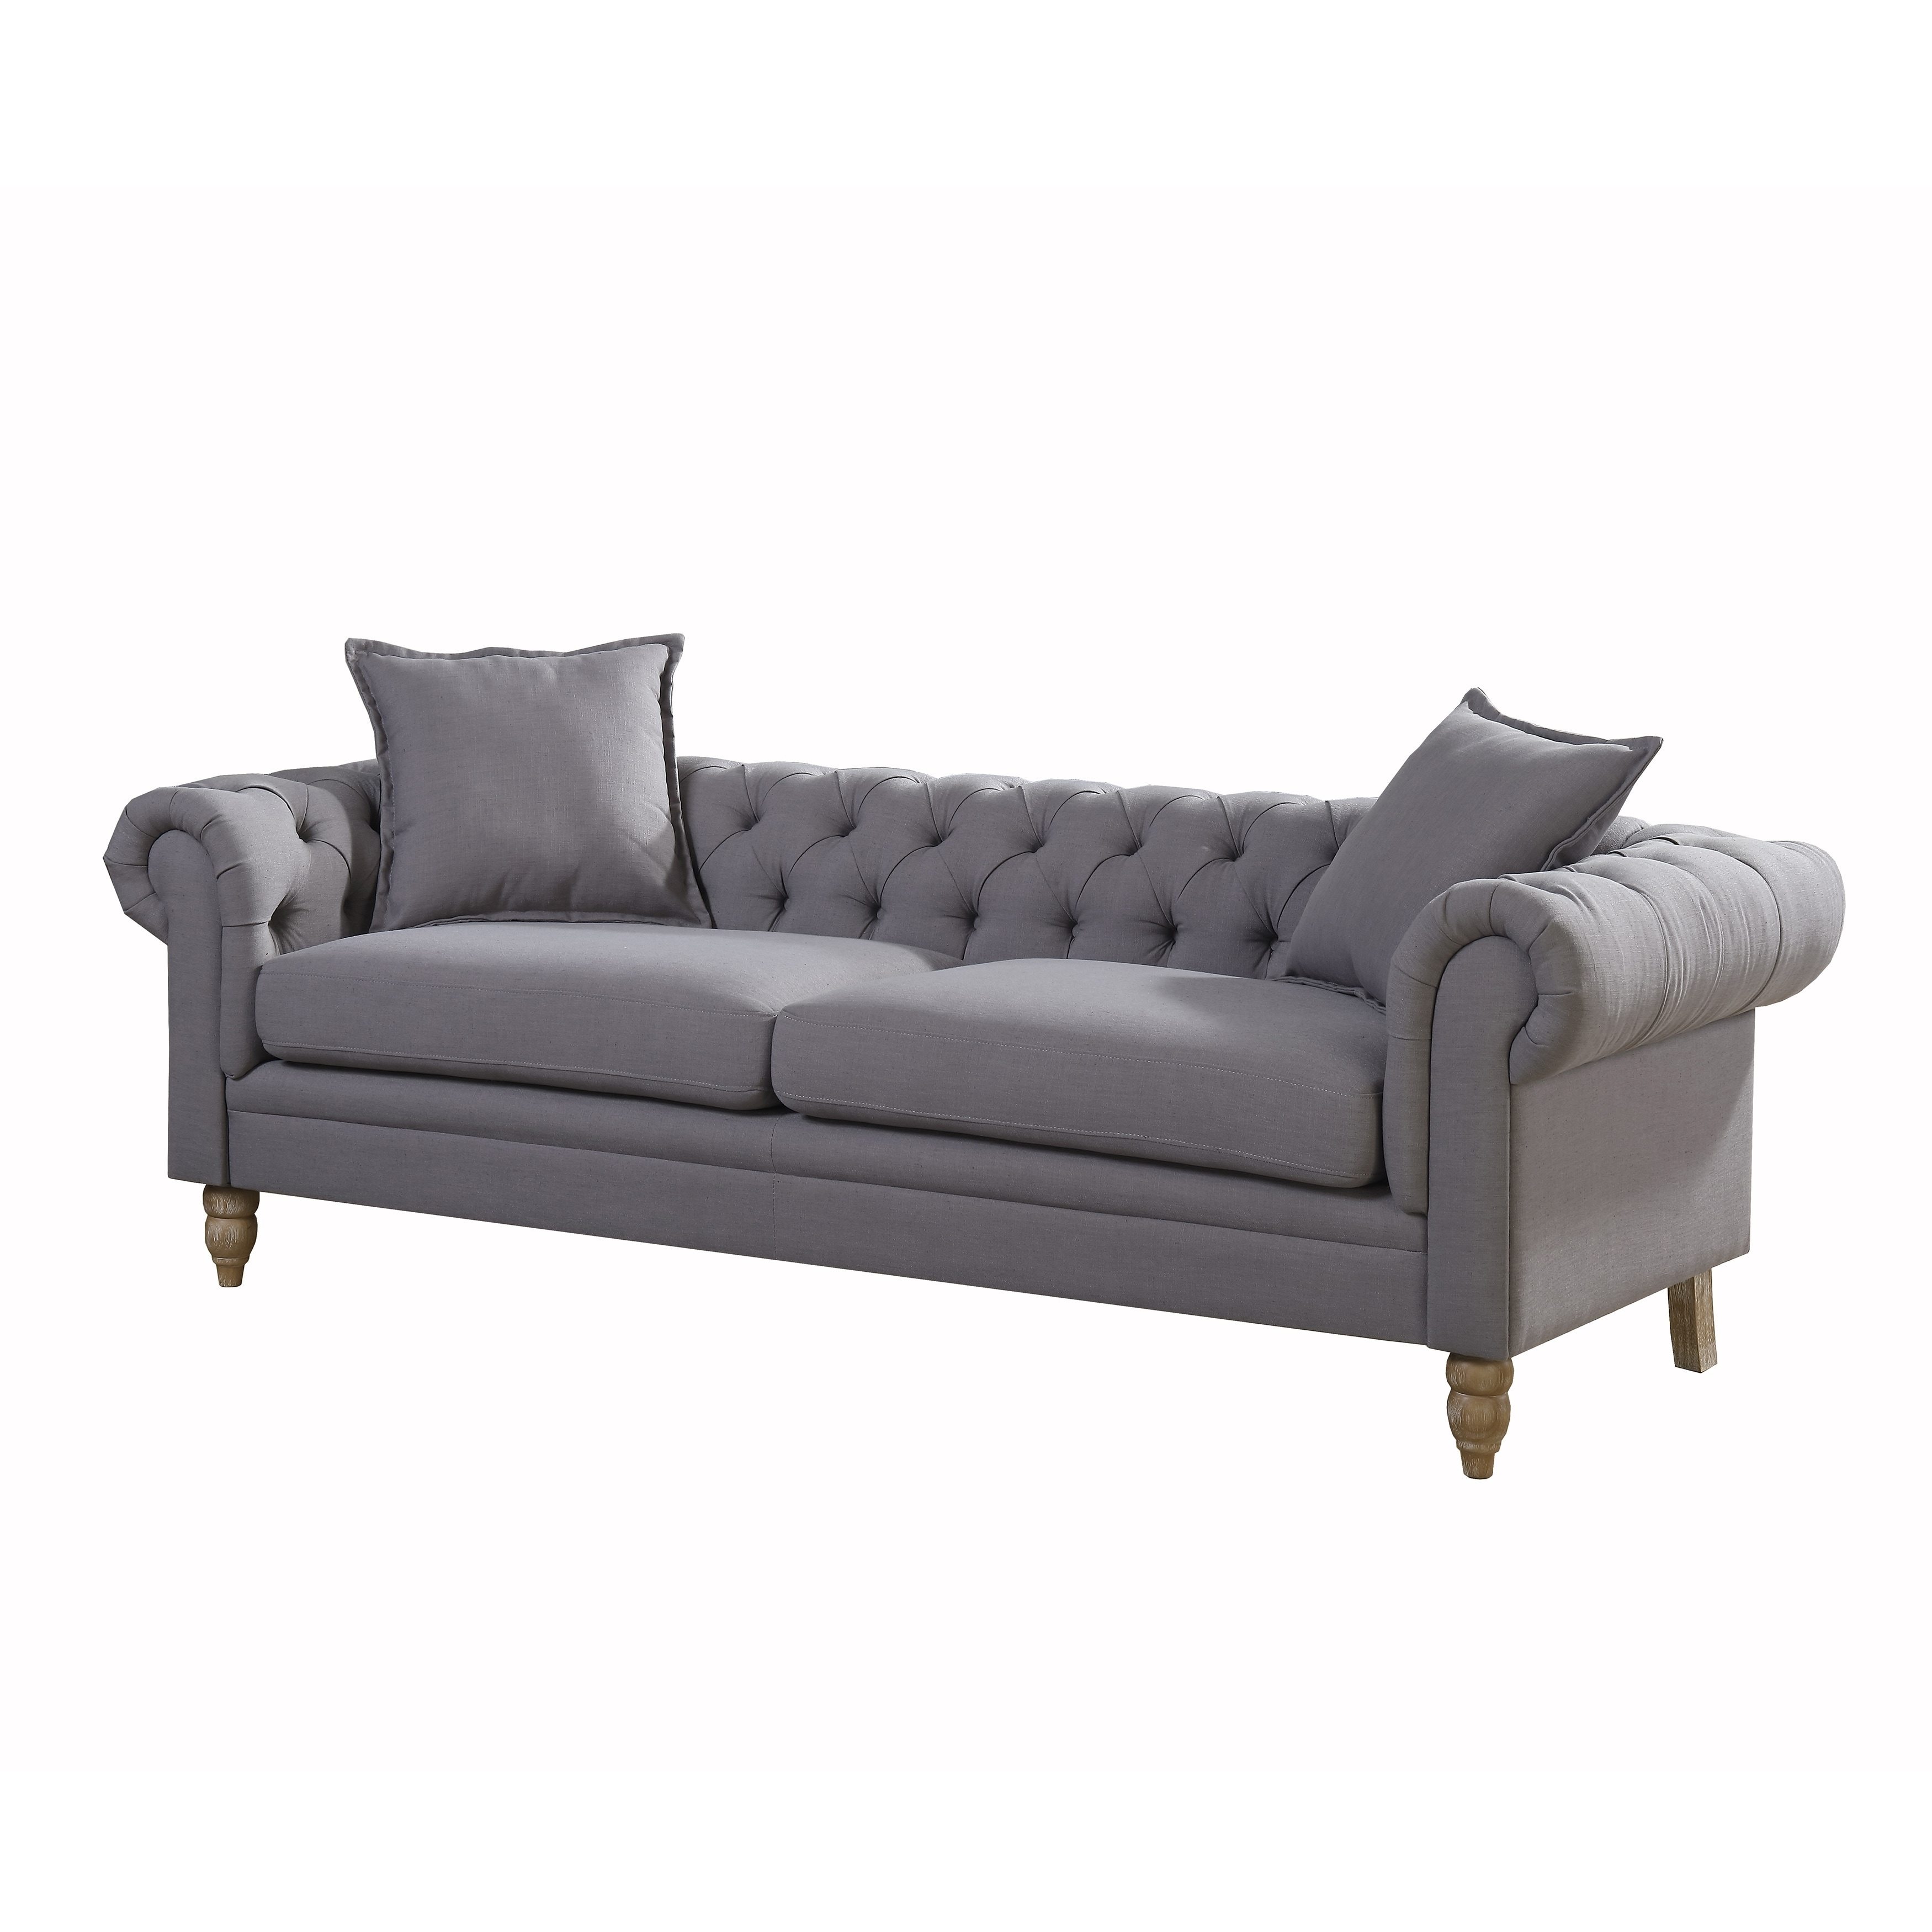 AC Pacific Christies Home Living Juliet Small Chesterfield Linen Fabric Sofa,  Grey